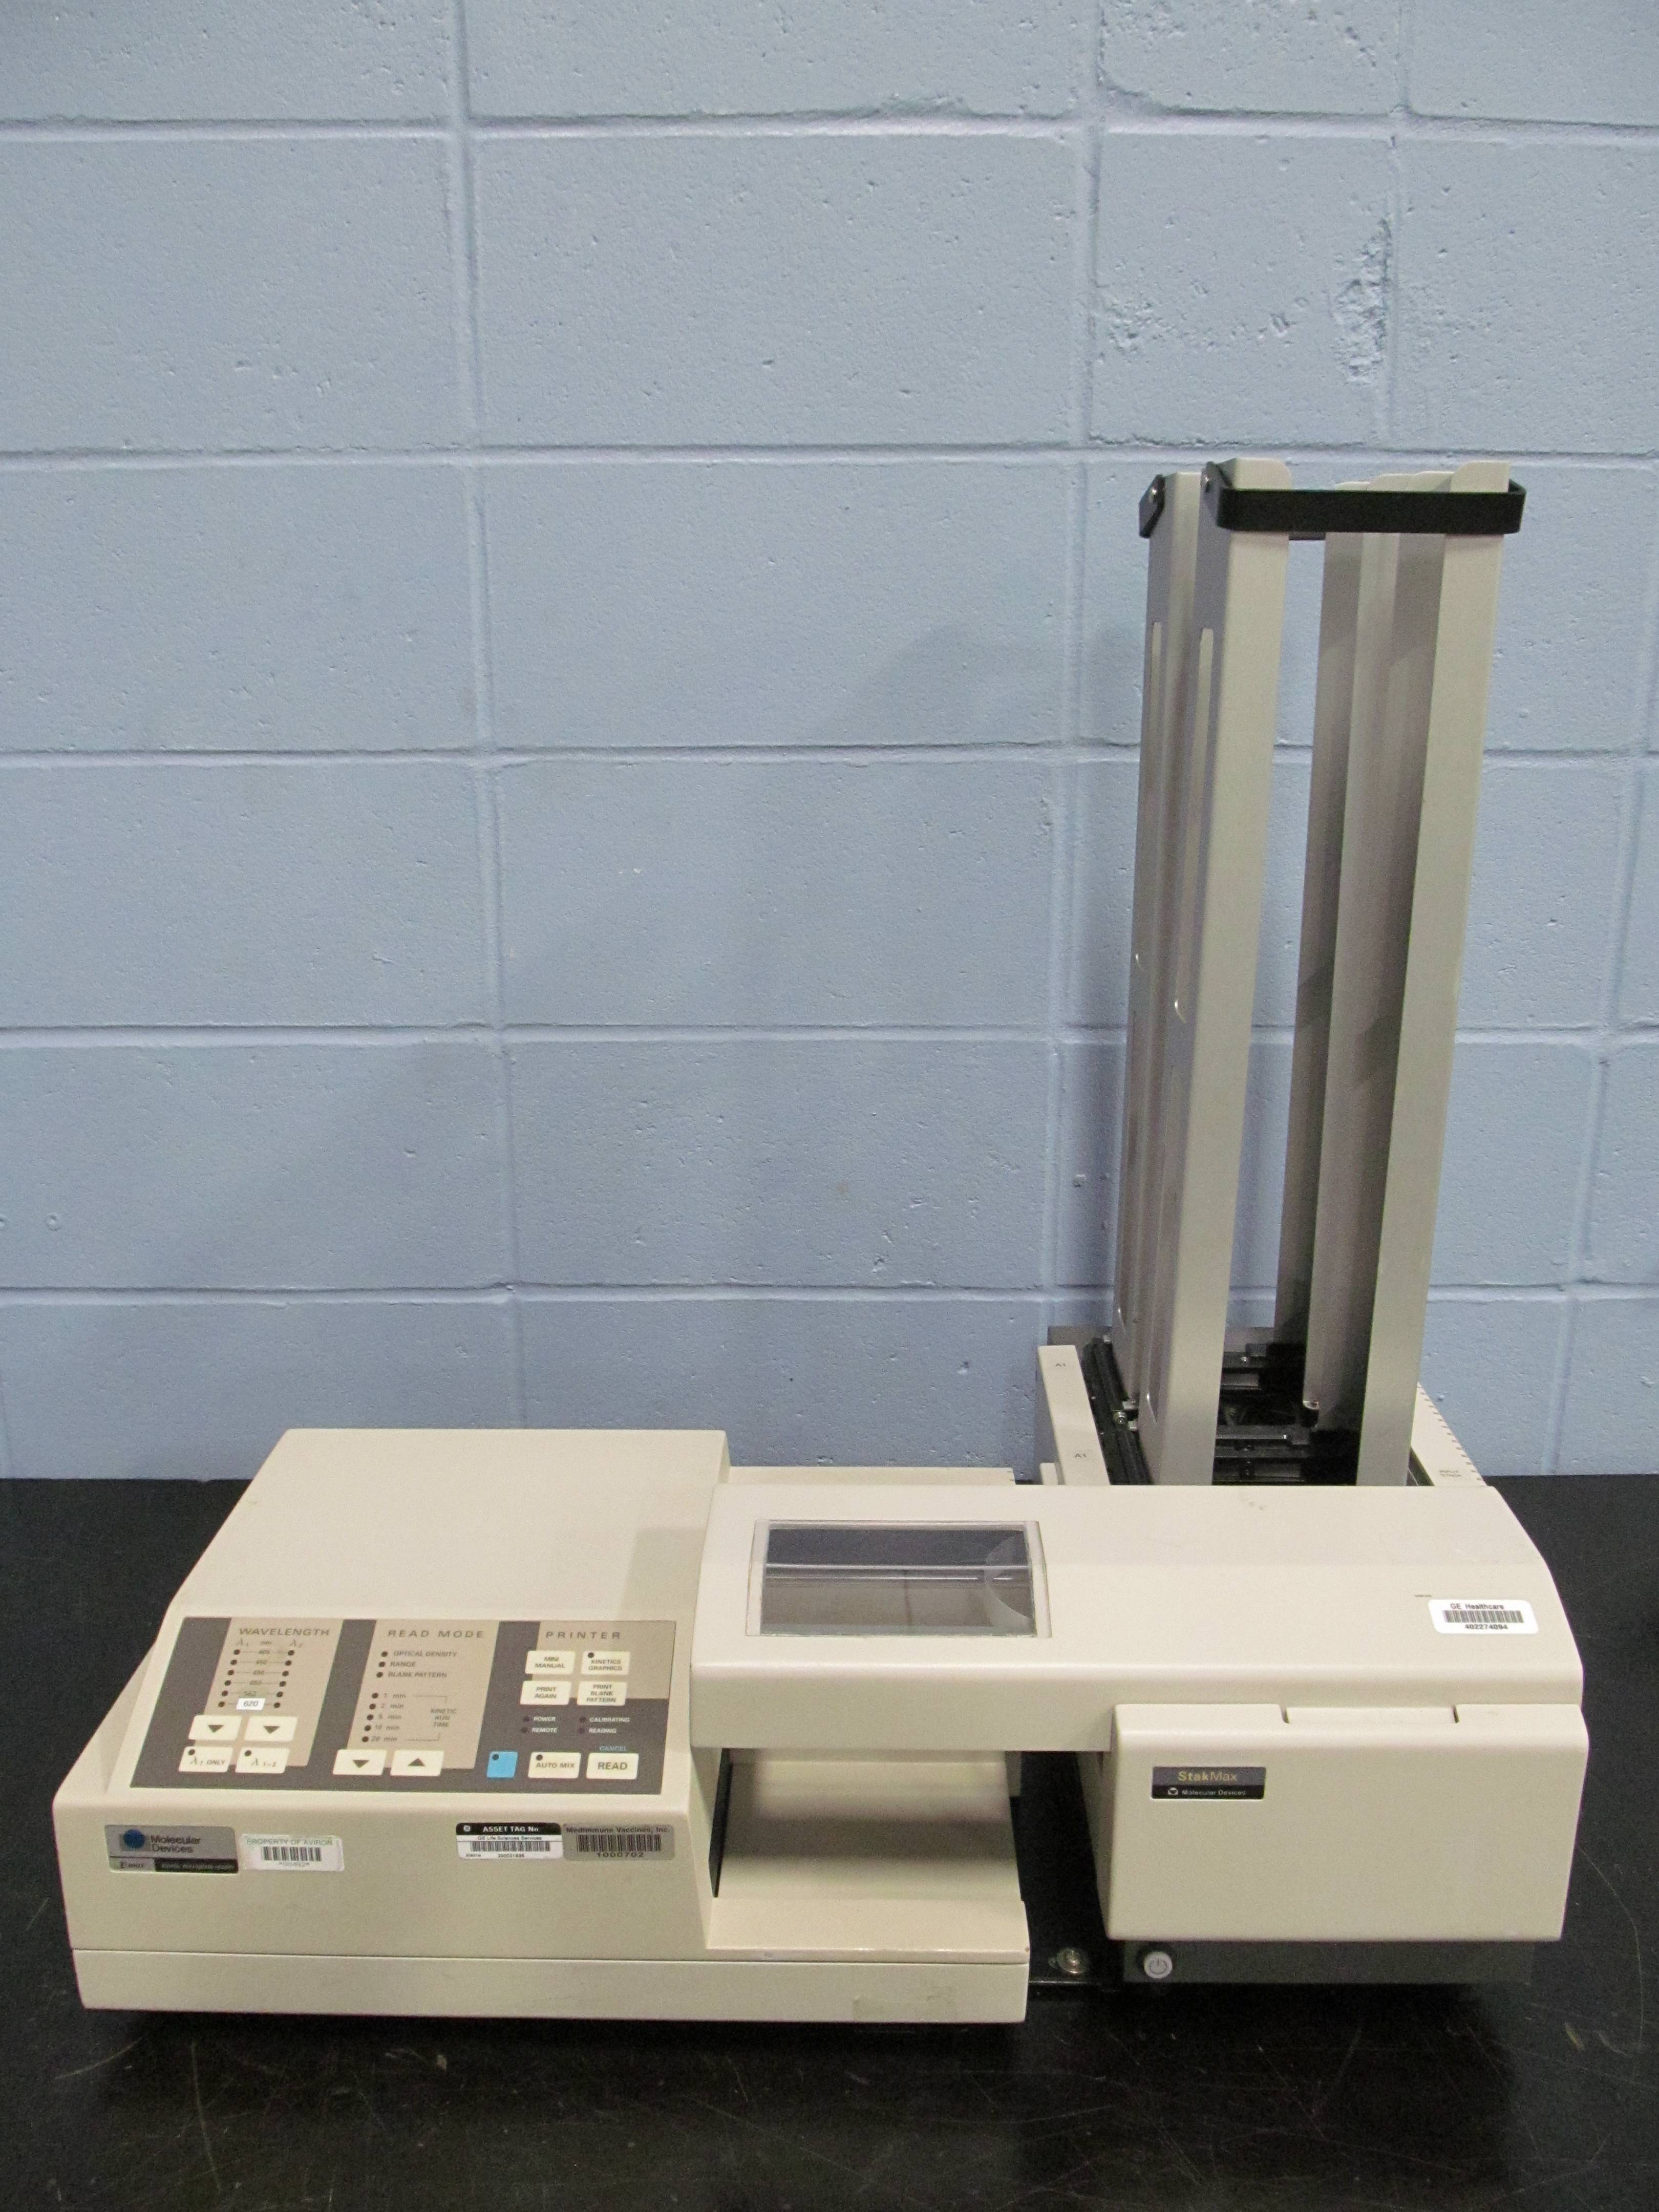 Molecular Devices Vmax Kinetic Microplate Reader With StakMax Microplate Stacker